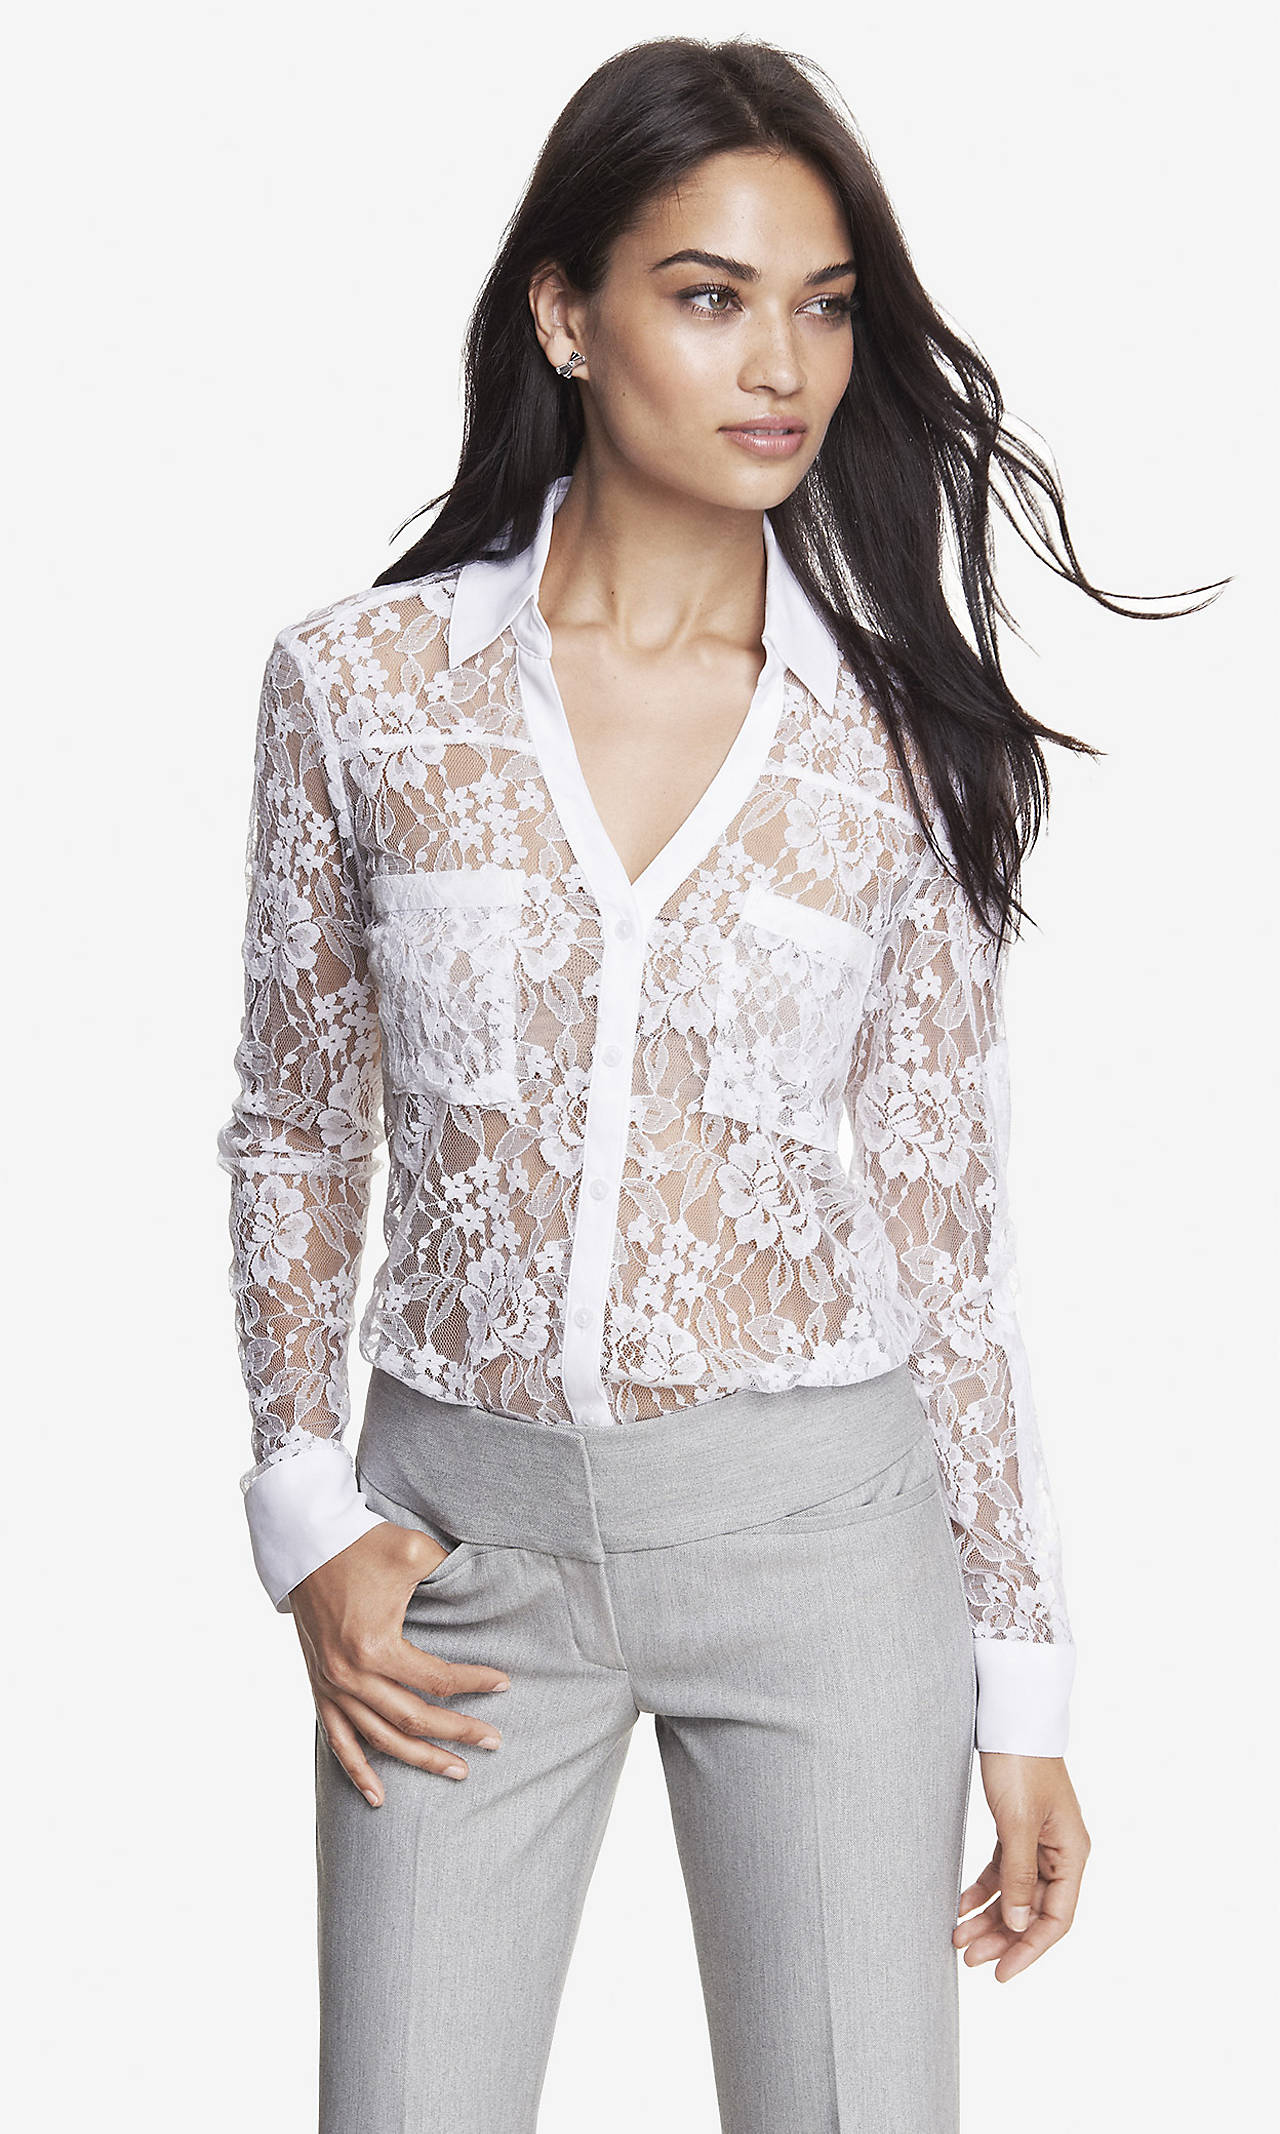 Victorian lace convertible sleeve portofino shirt from express